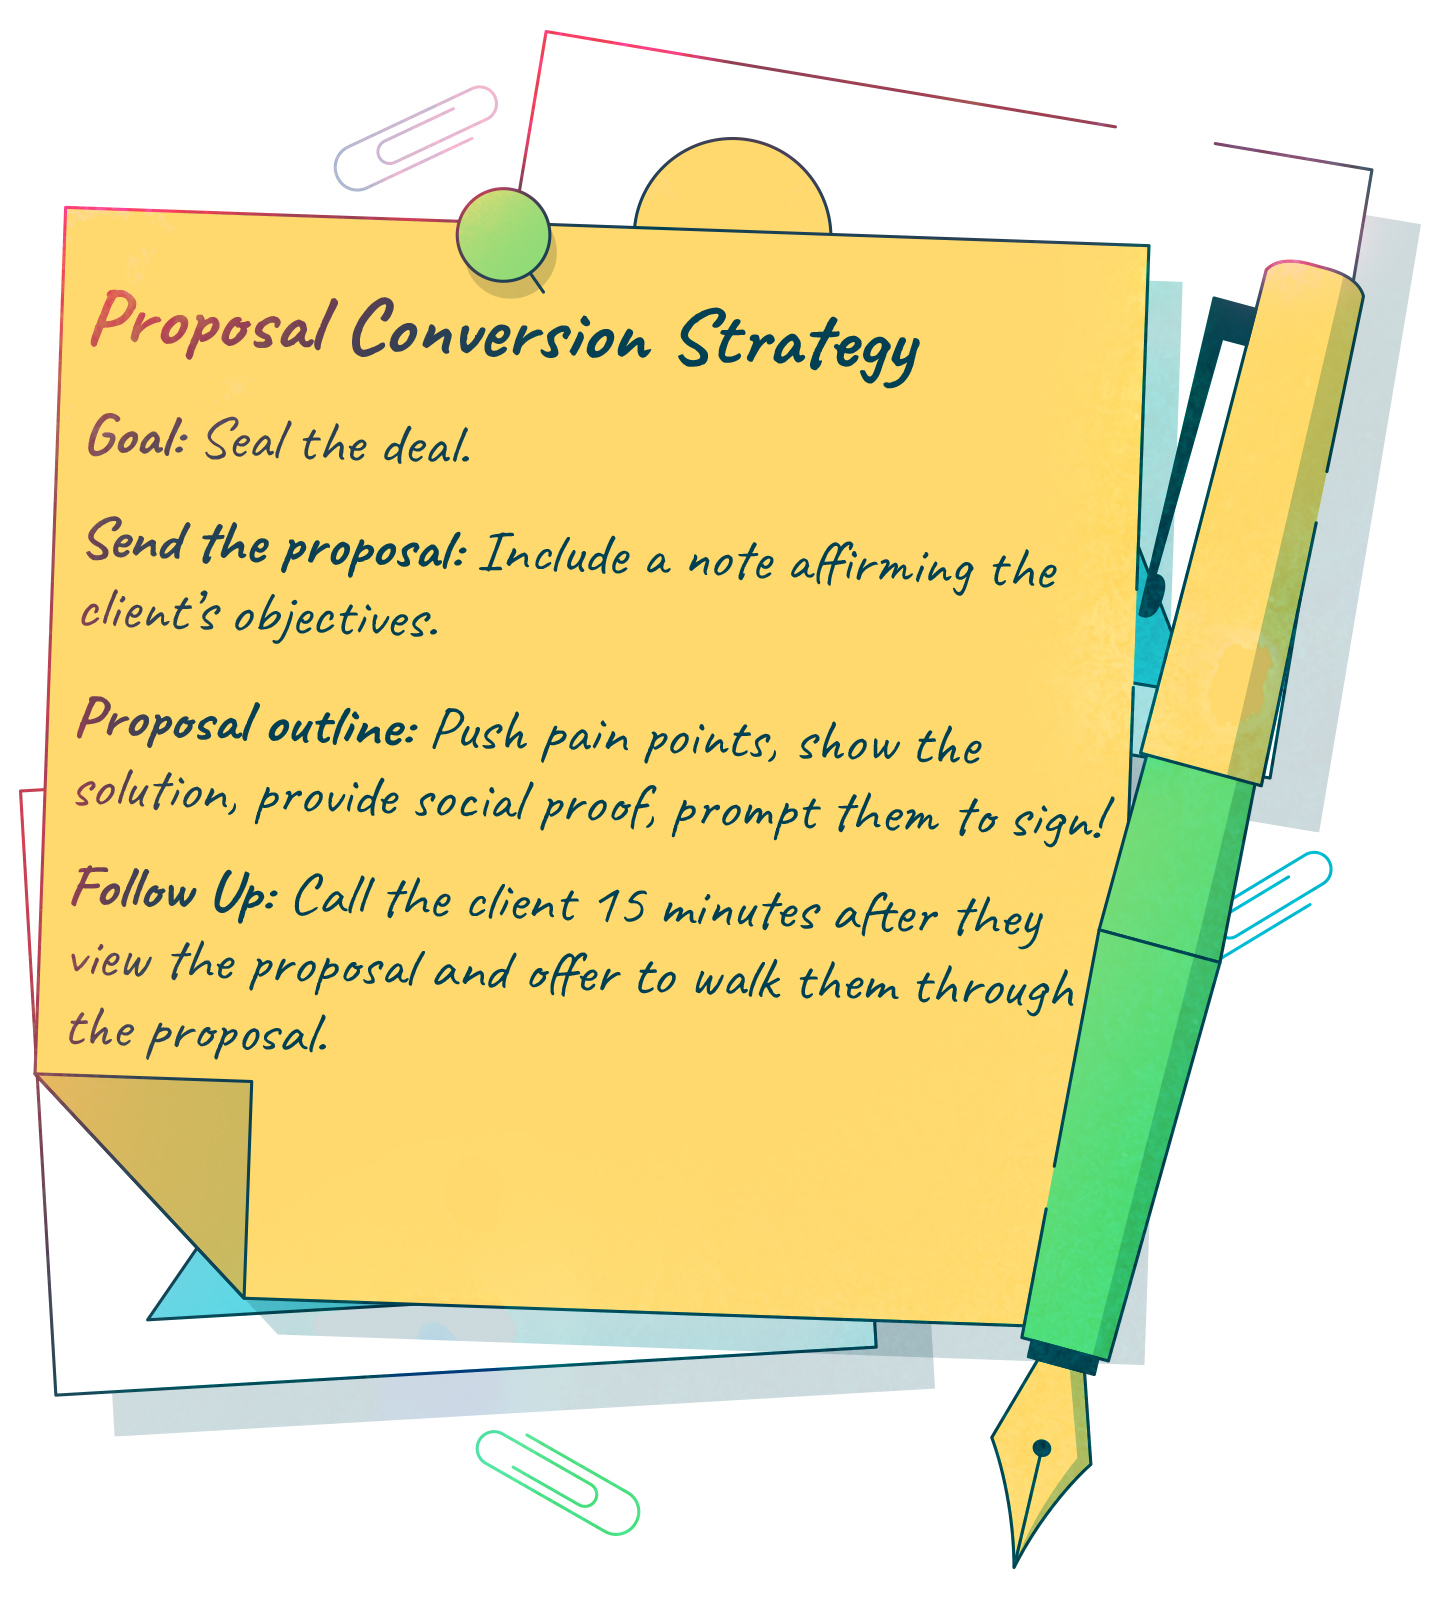 proposal conversion strategy checklist